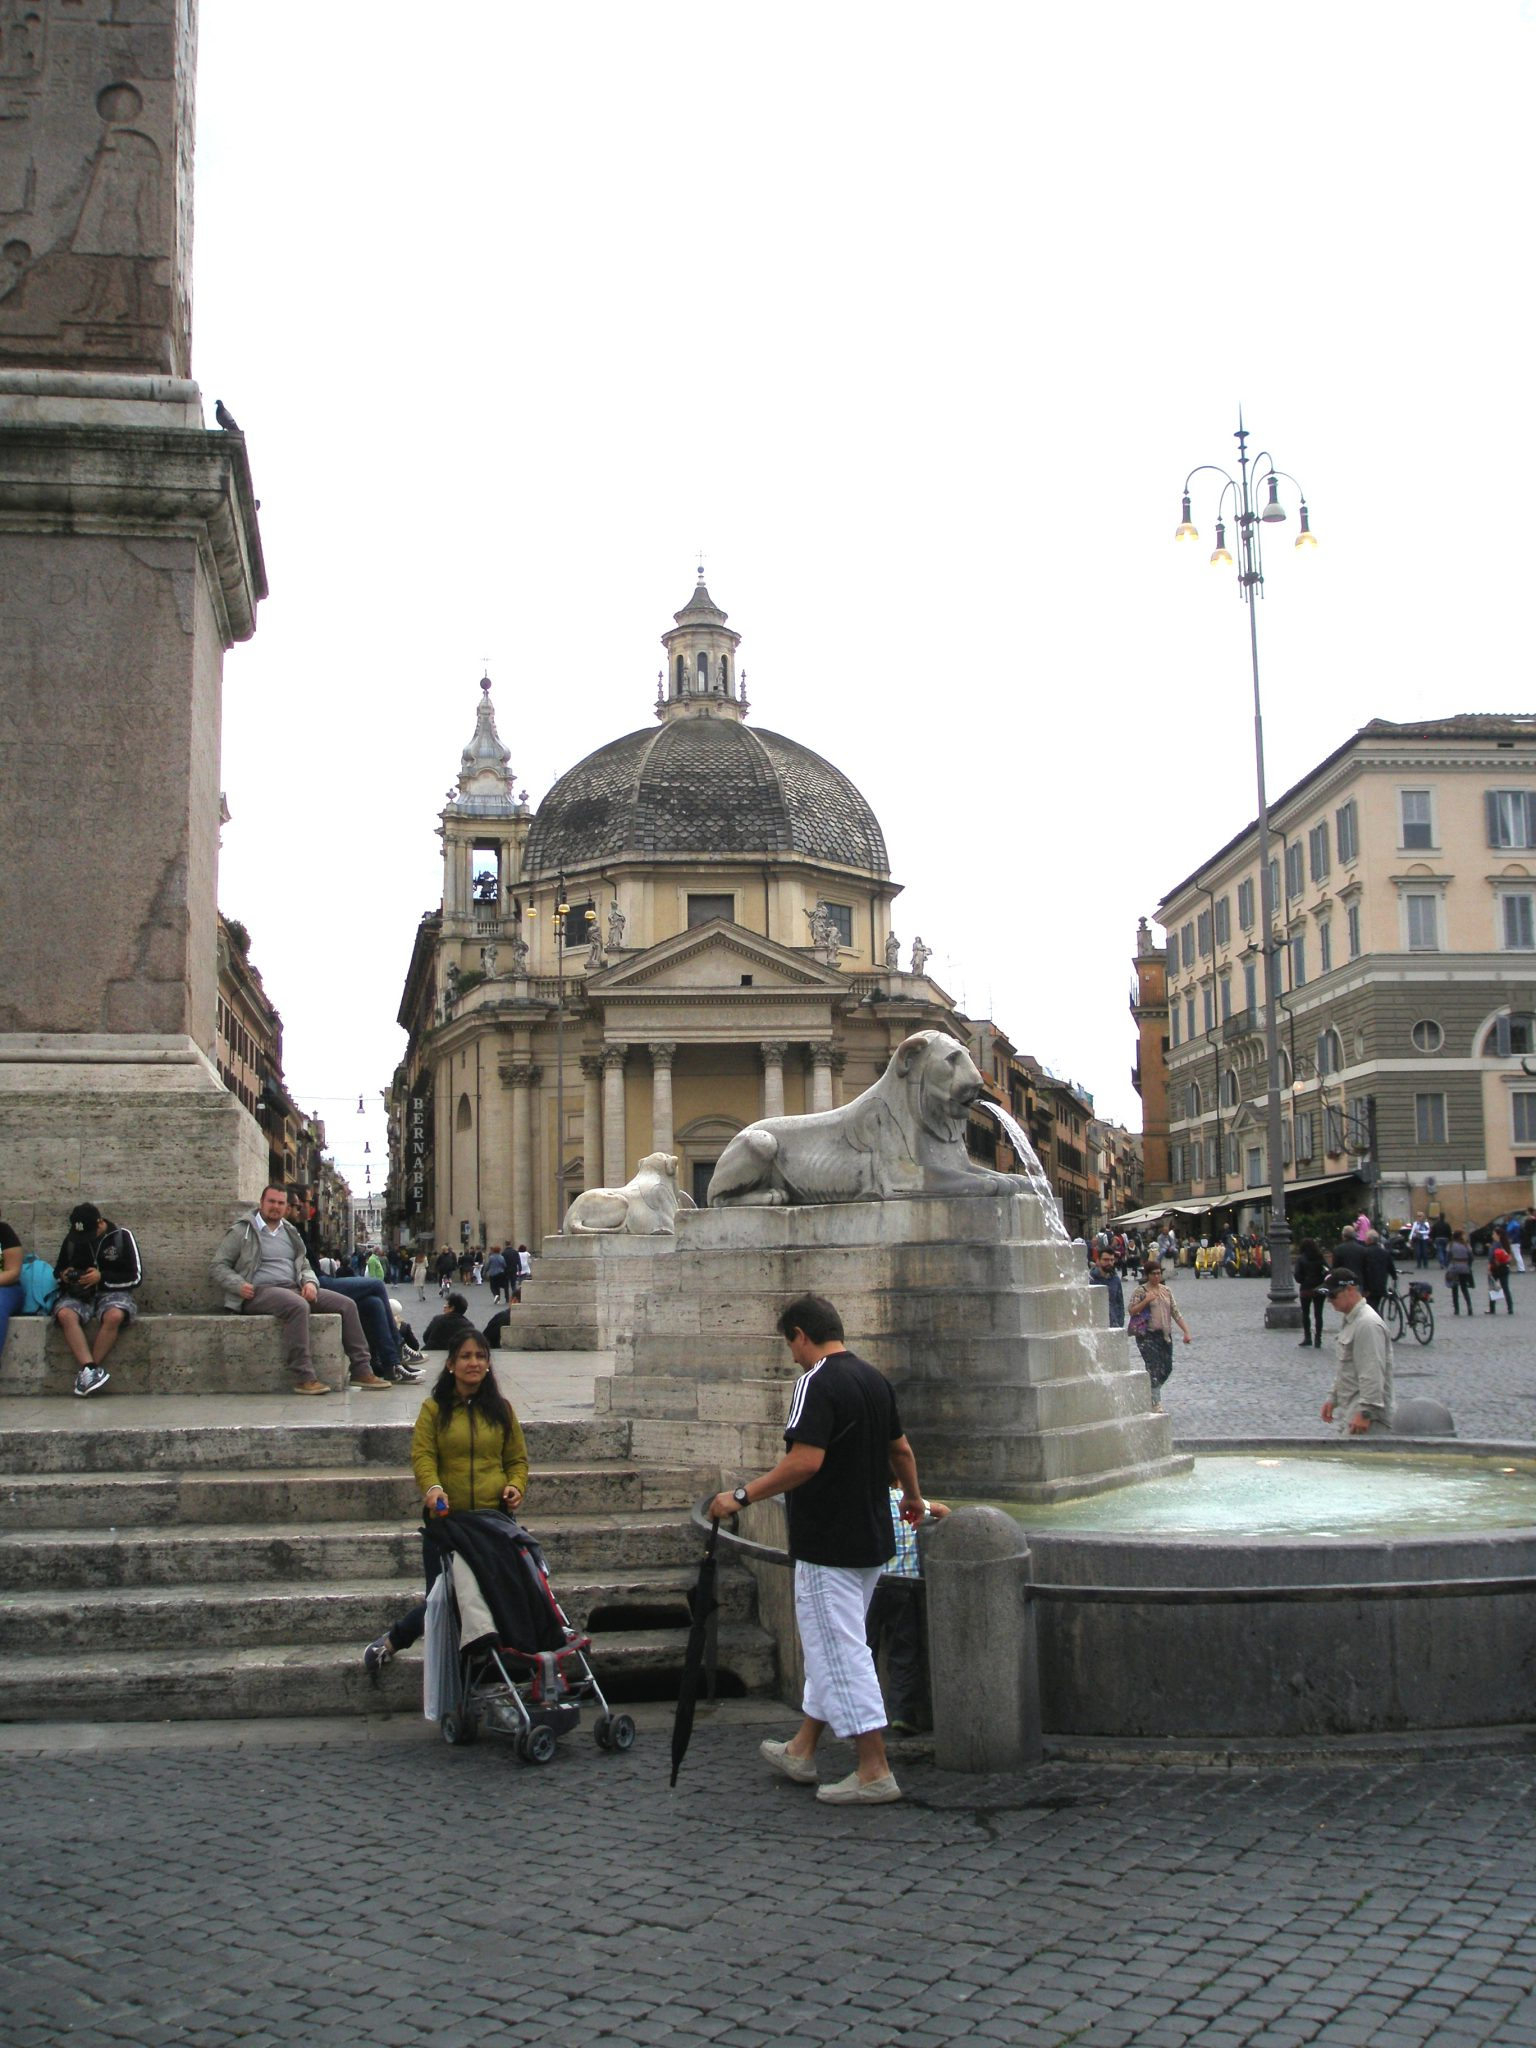 One of the four lions of the Fontana dell' Obelisco. The Church of Santa Maria dei Miracoli (built in 1681) is in the background.